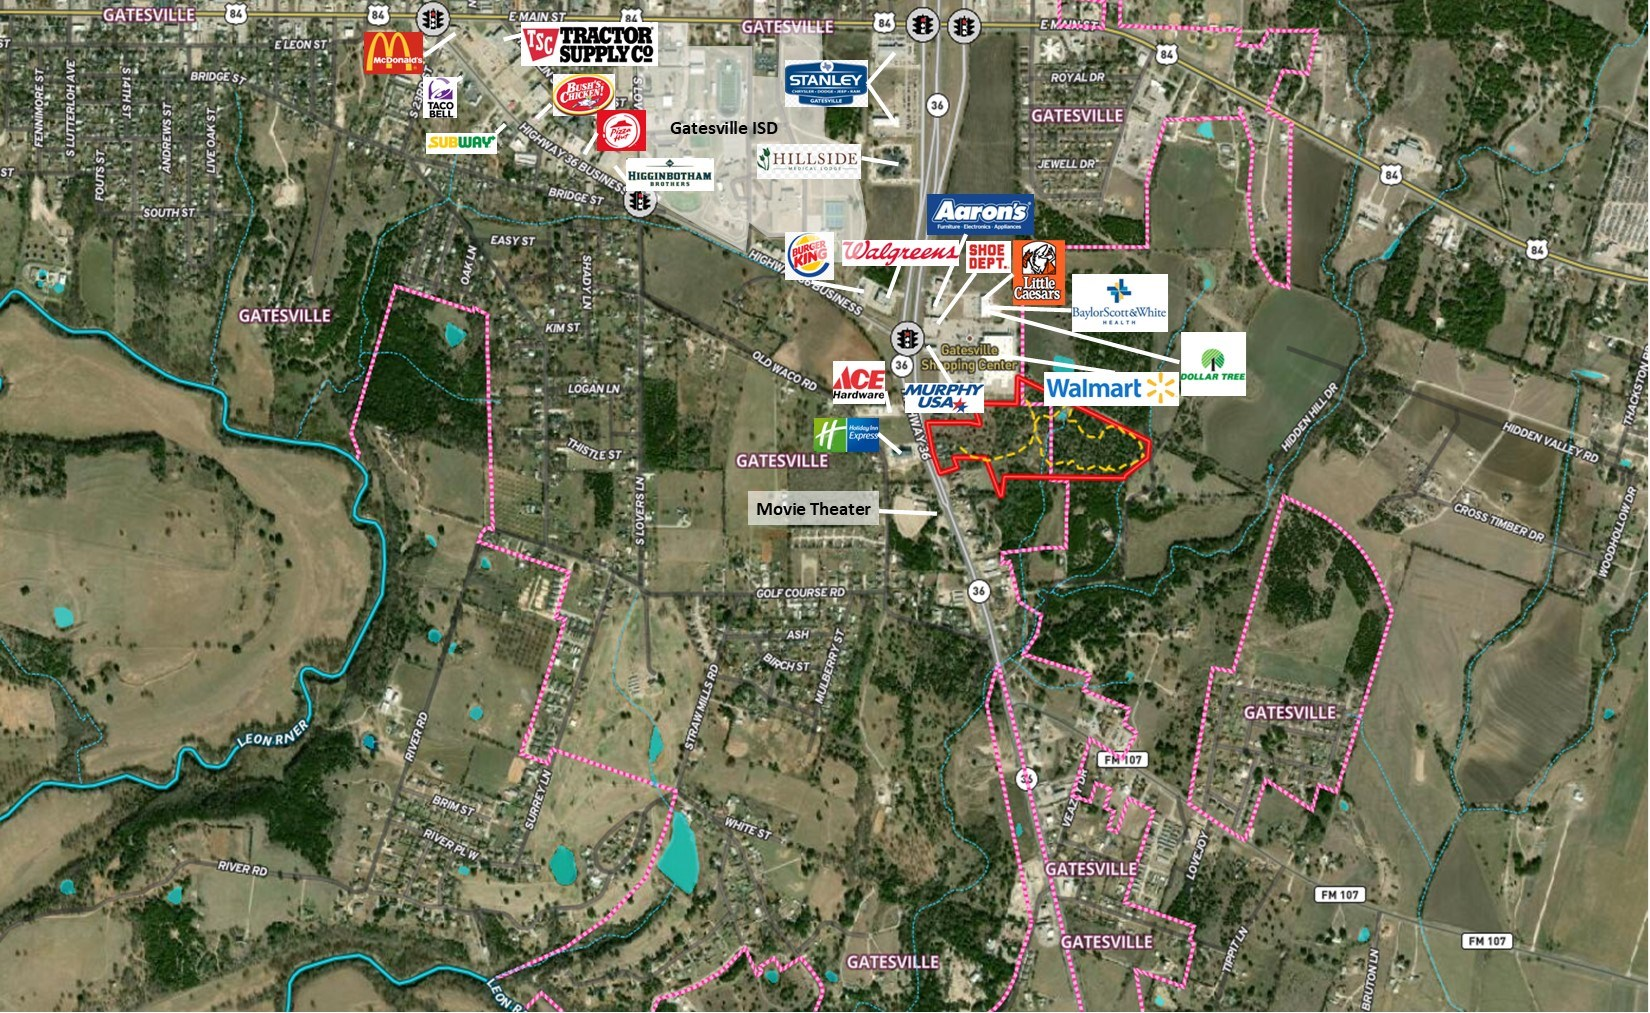 Commercial Property for Sale in Central Texas